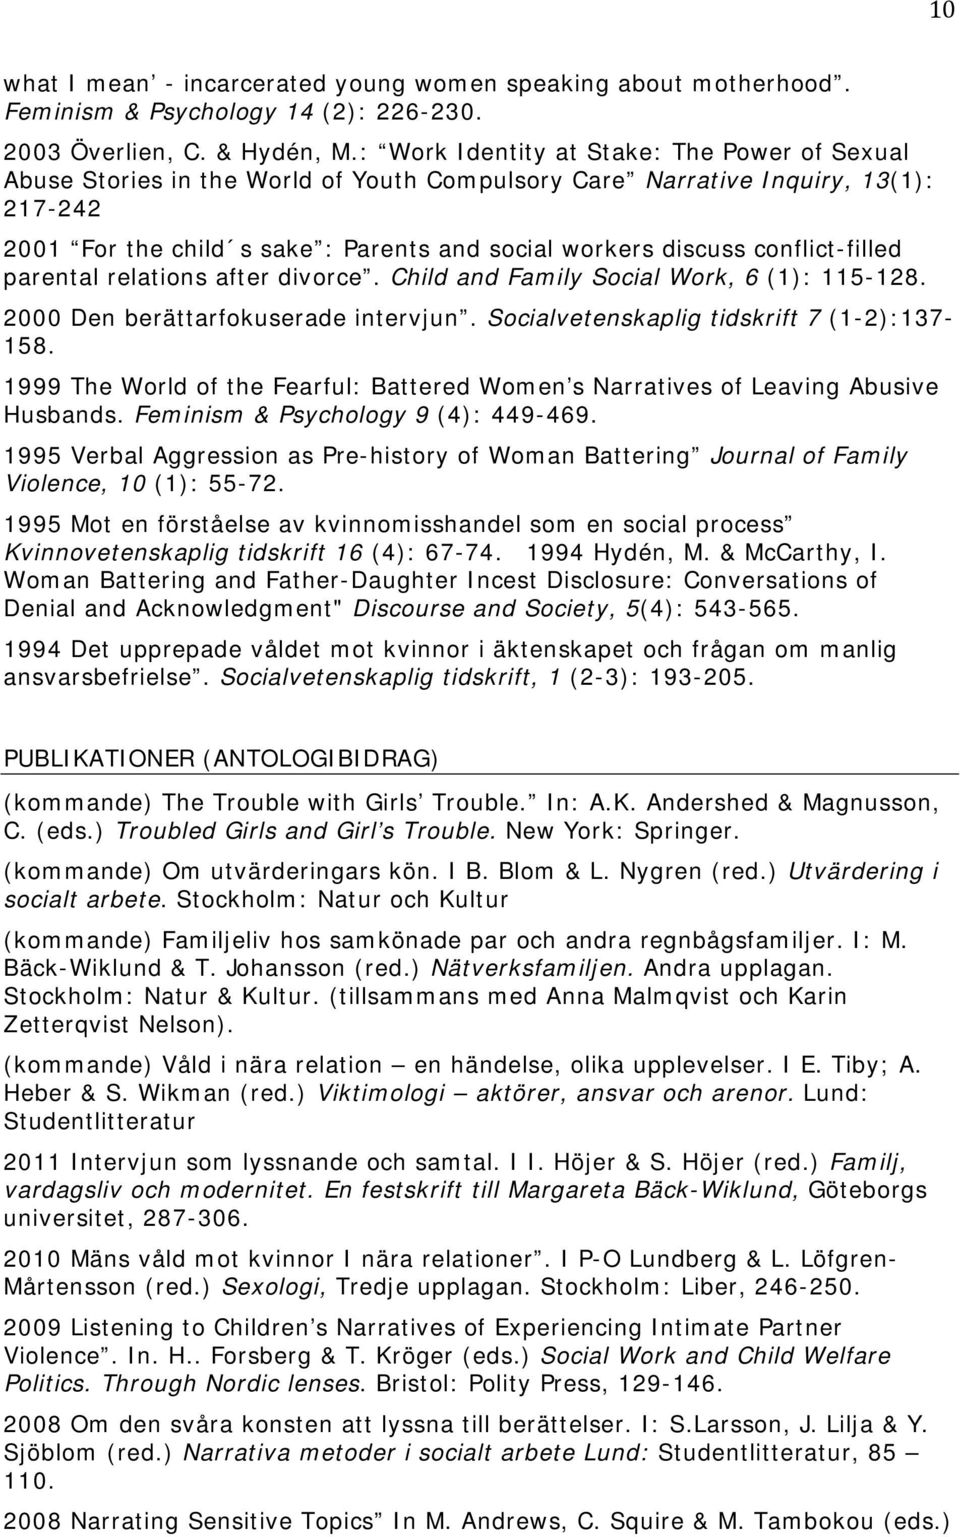 conflict-filled parental relations after divorce. Child and Family Social Work, 6 (1): 115-128. 2000 Den berättarfokuserade intervjun. Socialvetenskaplig tidskrift 7 (1-2):137-158.